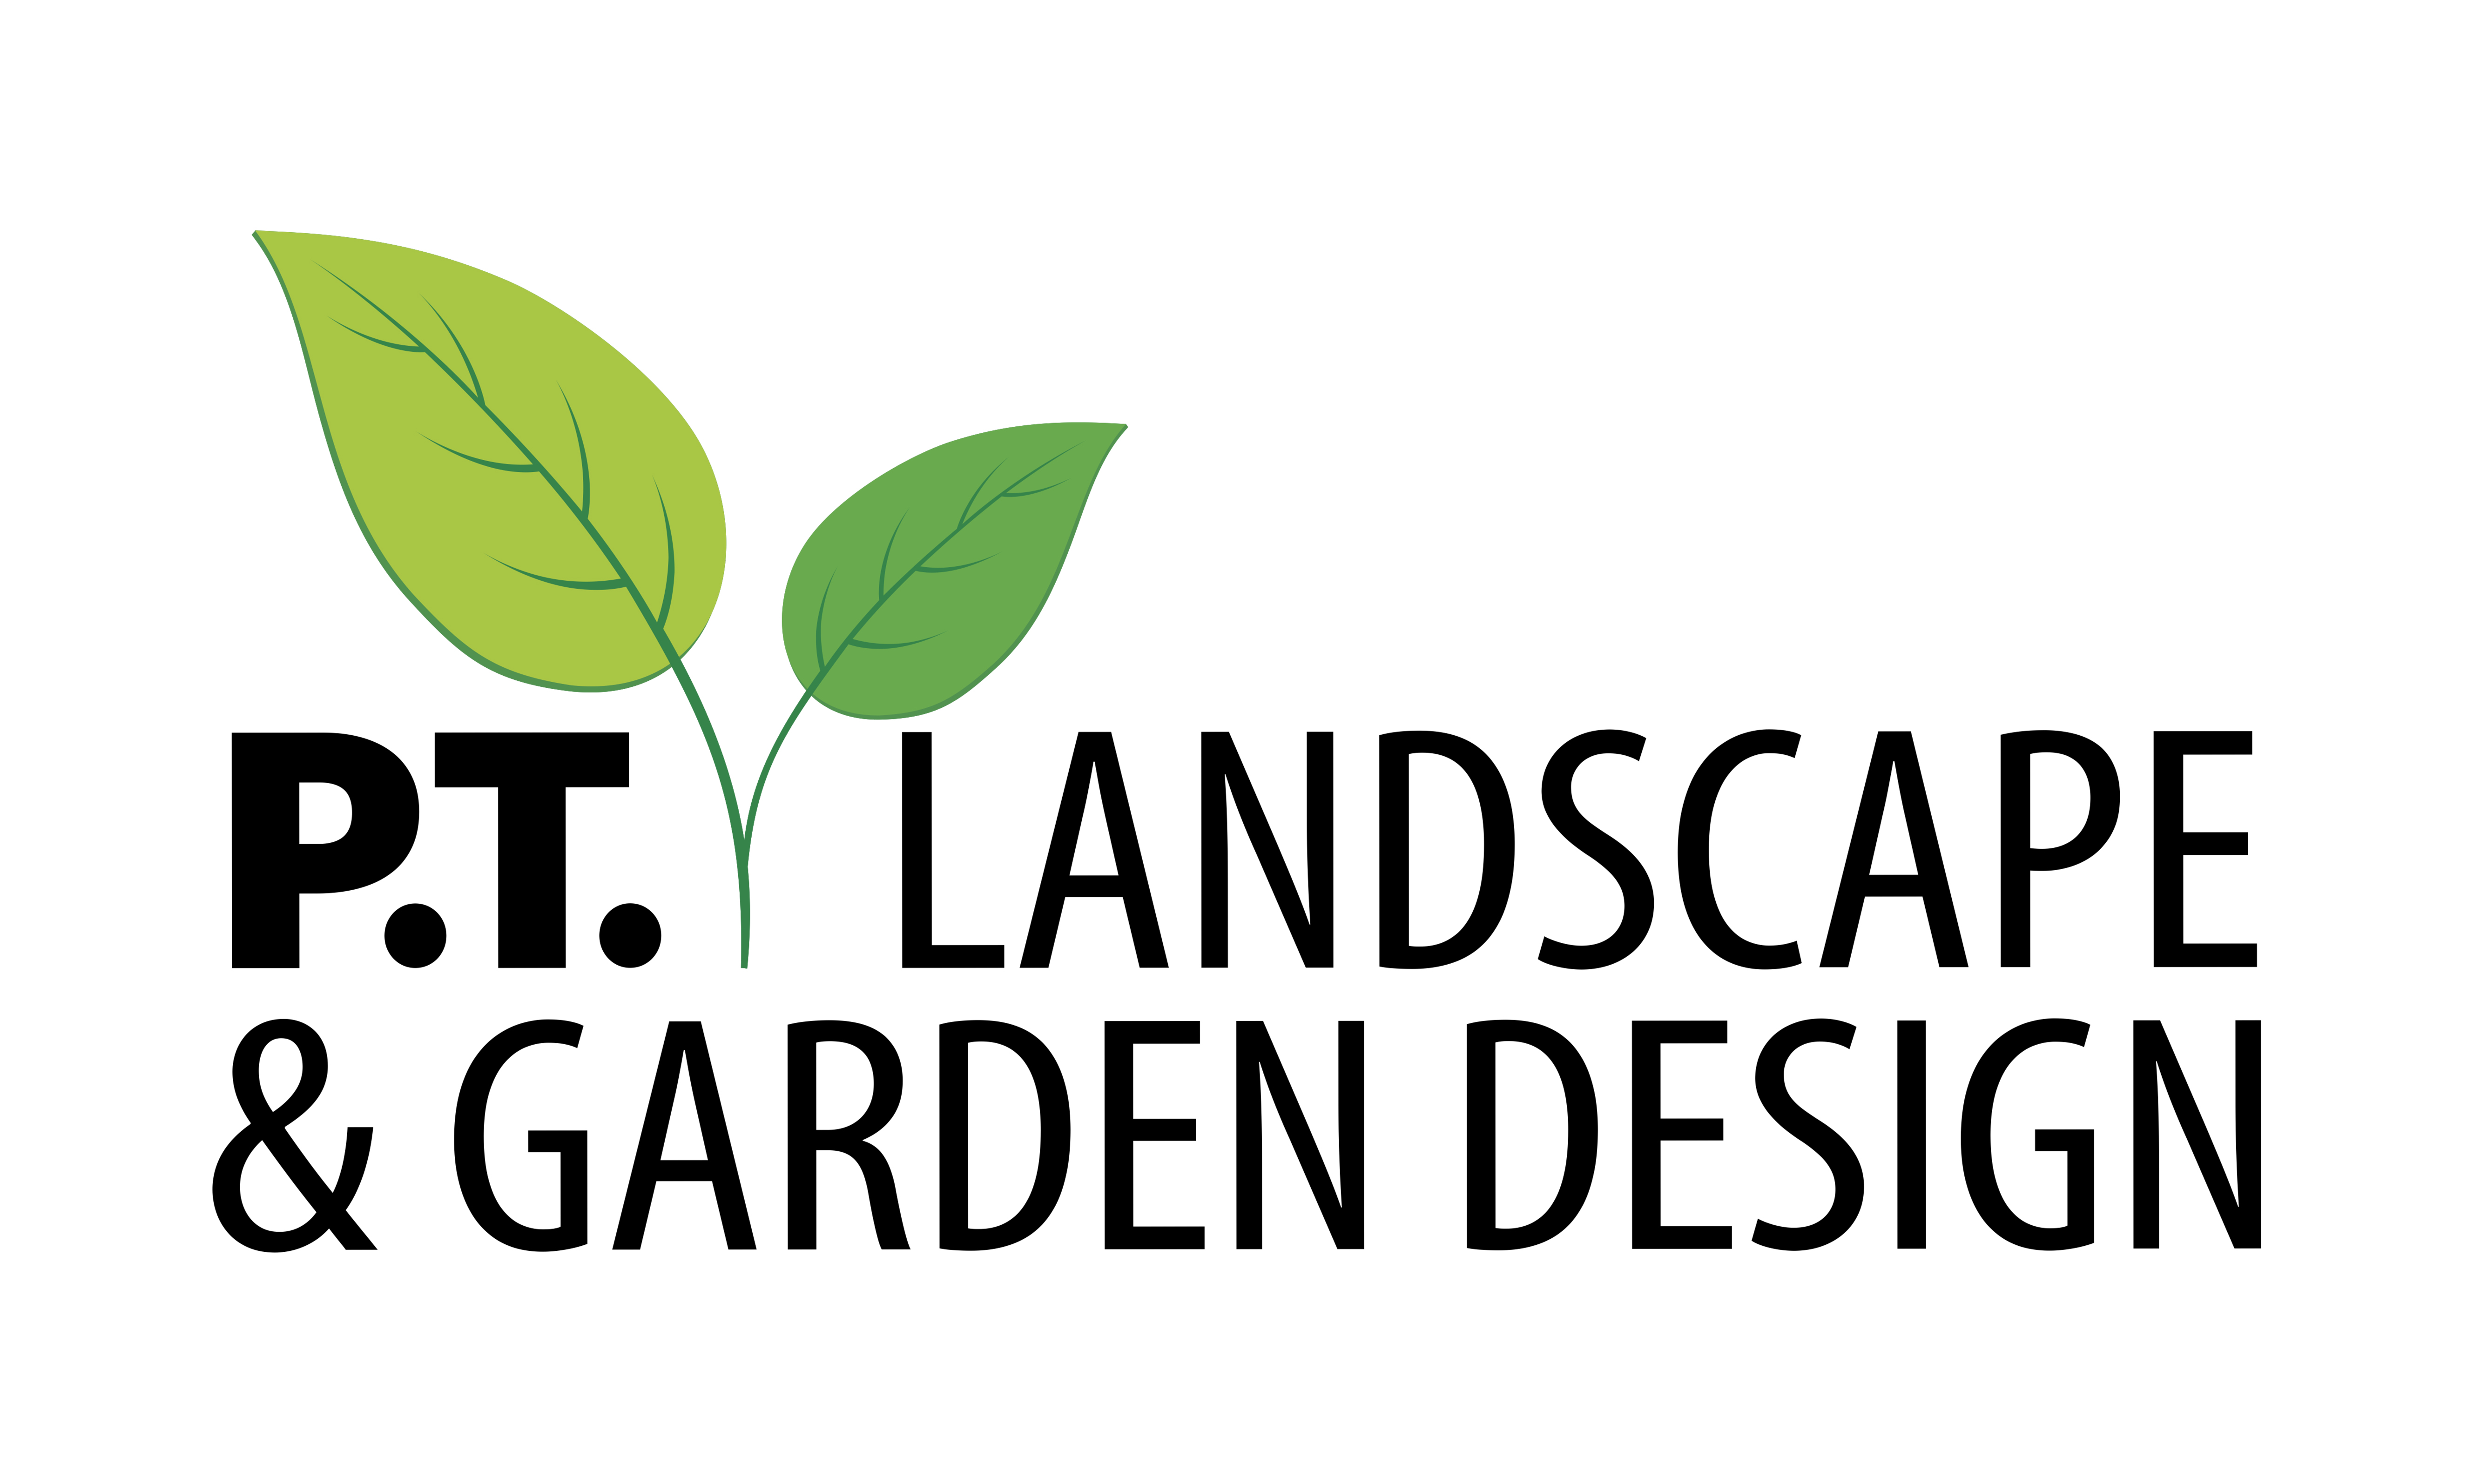 P.T. Landscape and Garden Design